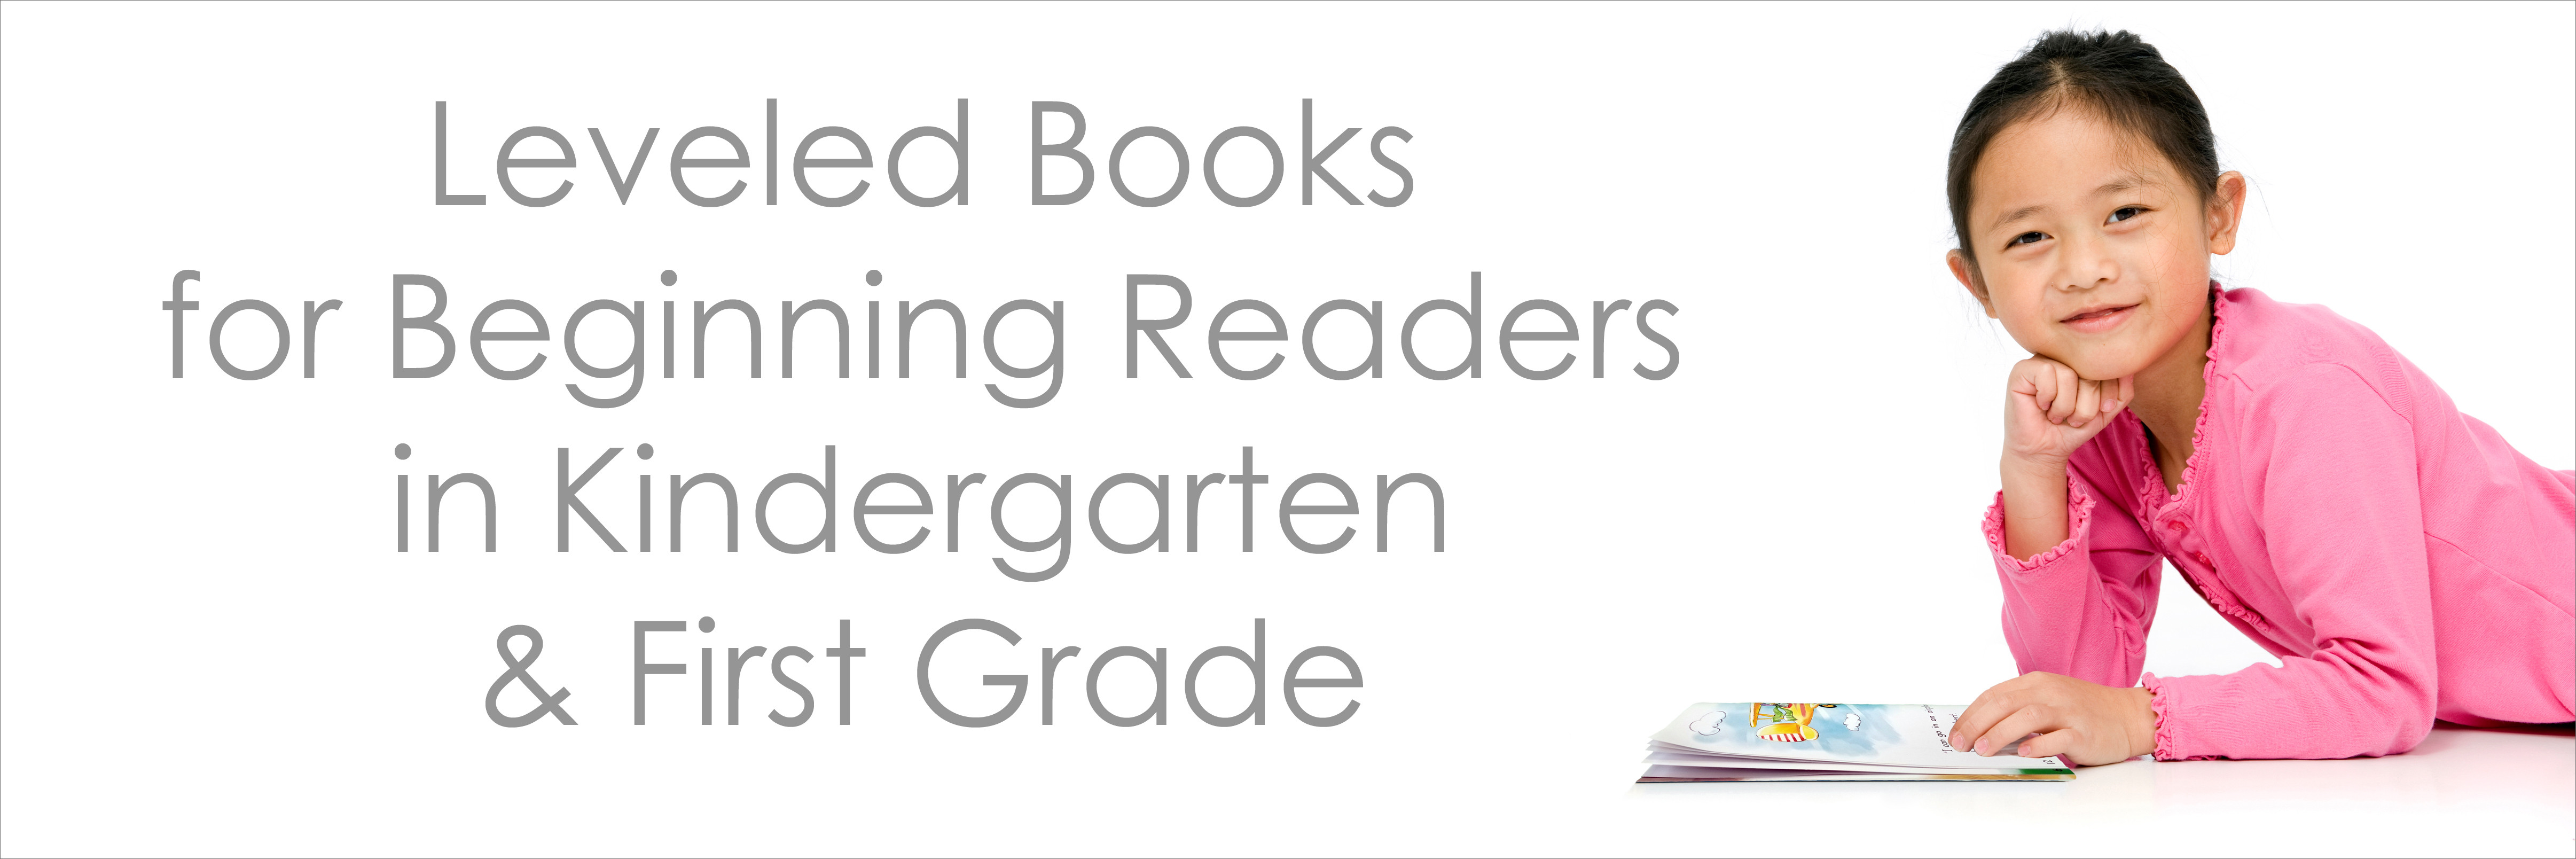 Banner:  Leveled Books for Beginning Readers in Kindergarten and First Grade